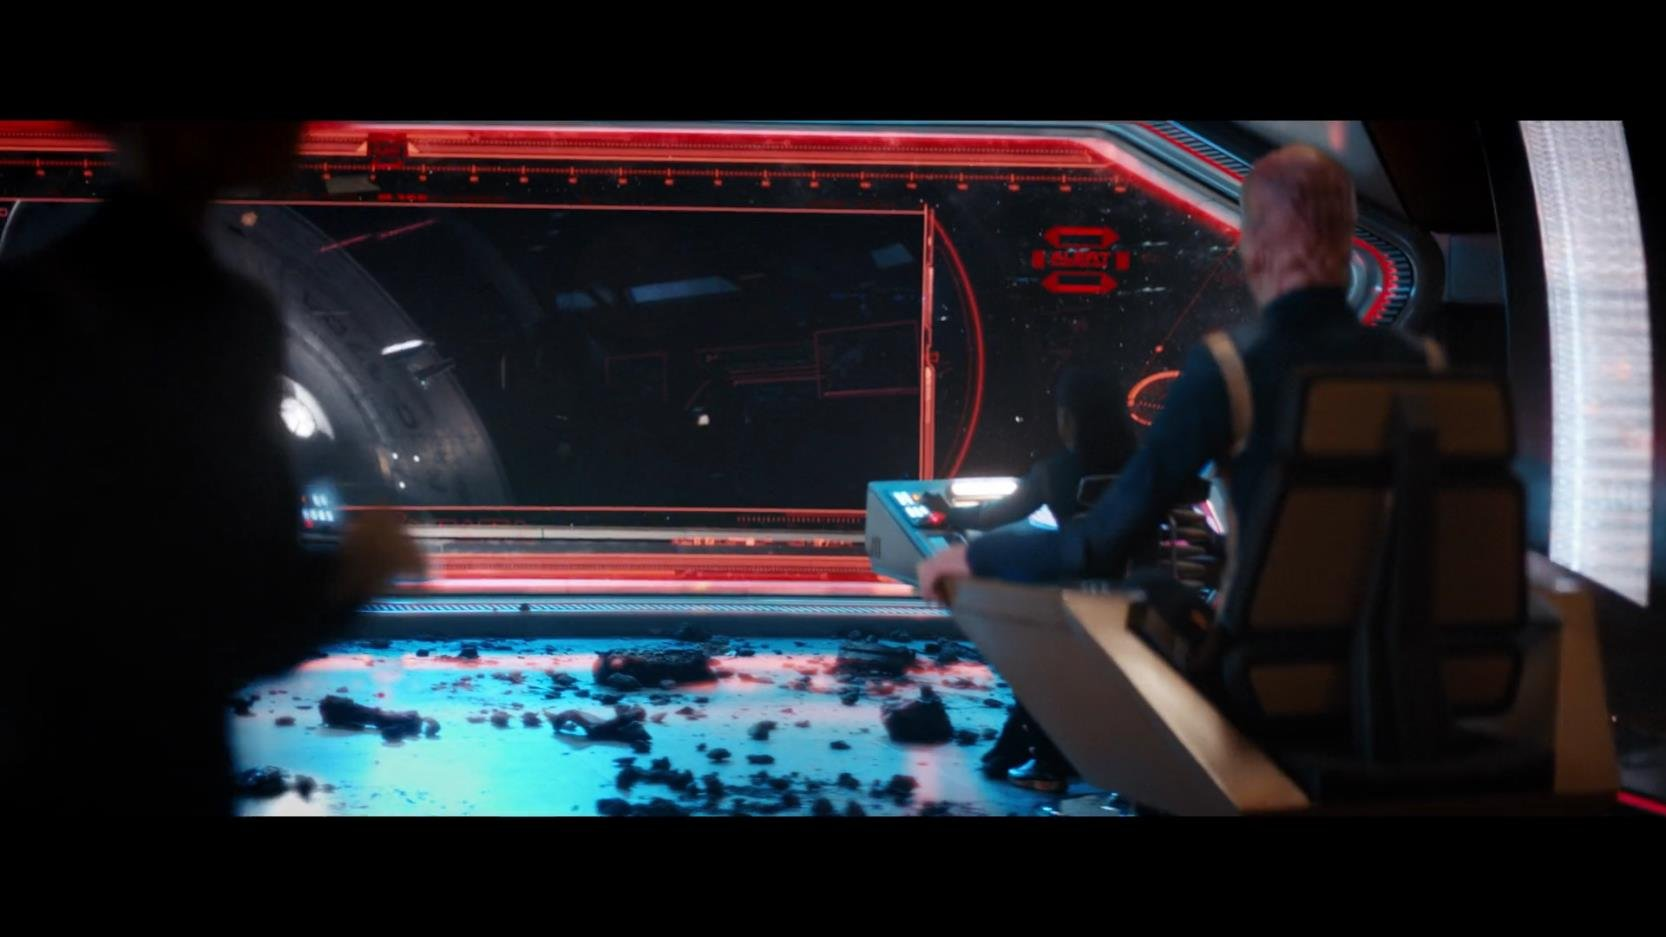 star.trek.discovery.s02e13.internal.1080p.web.x264-bamboozle (1).mkv_000659074.jpg